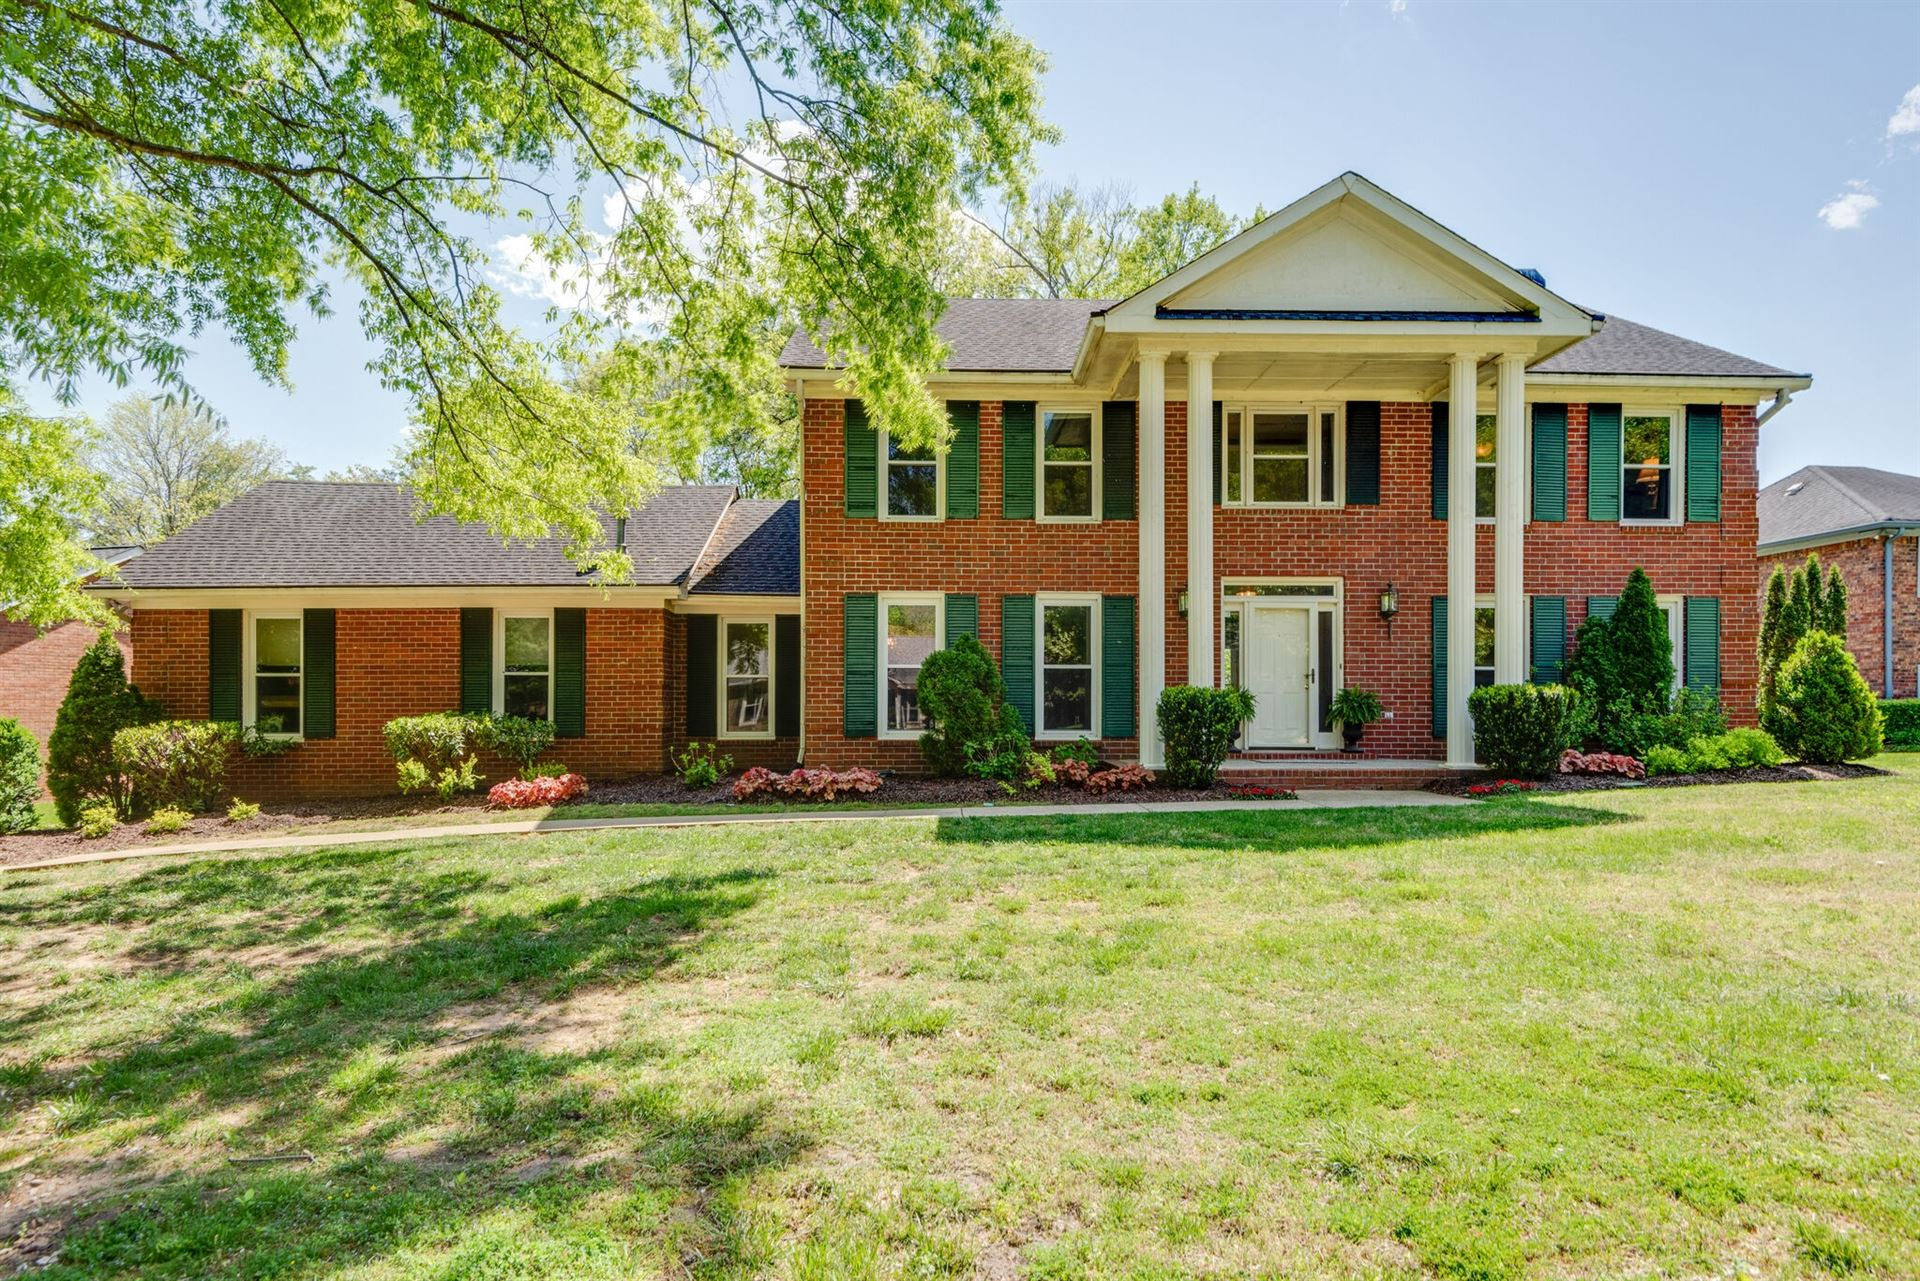 609 Spring House Ct, Brentwood, TN 37027 - MLS#: 2250316